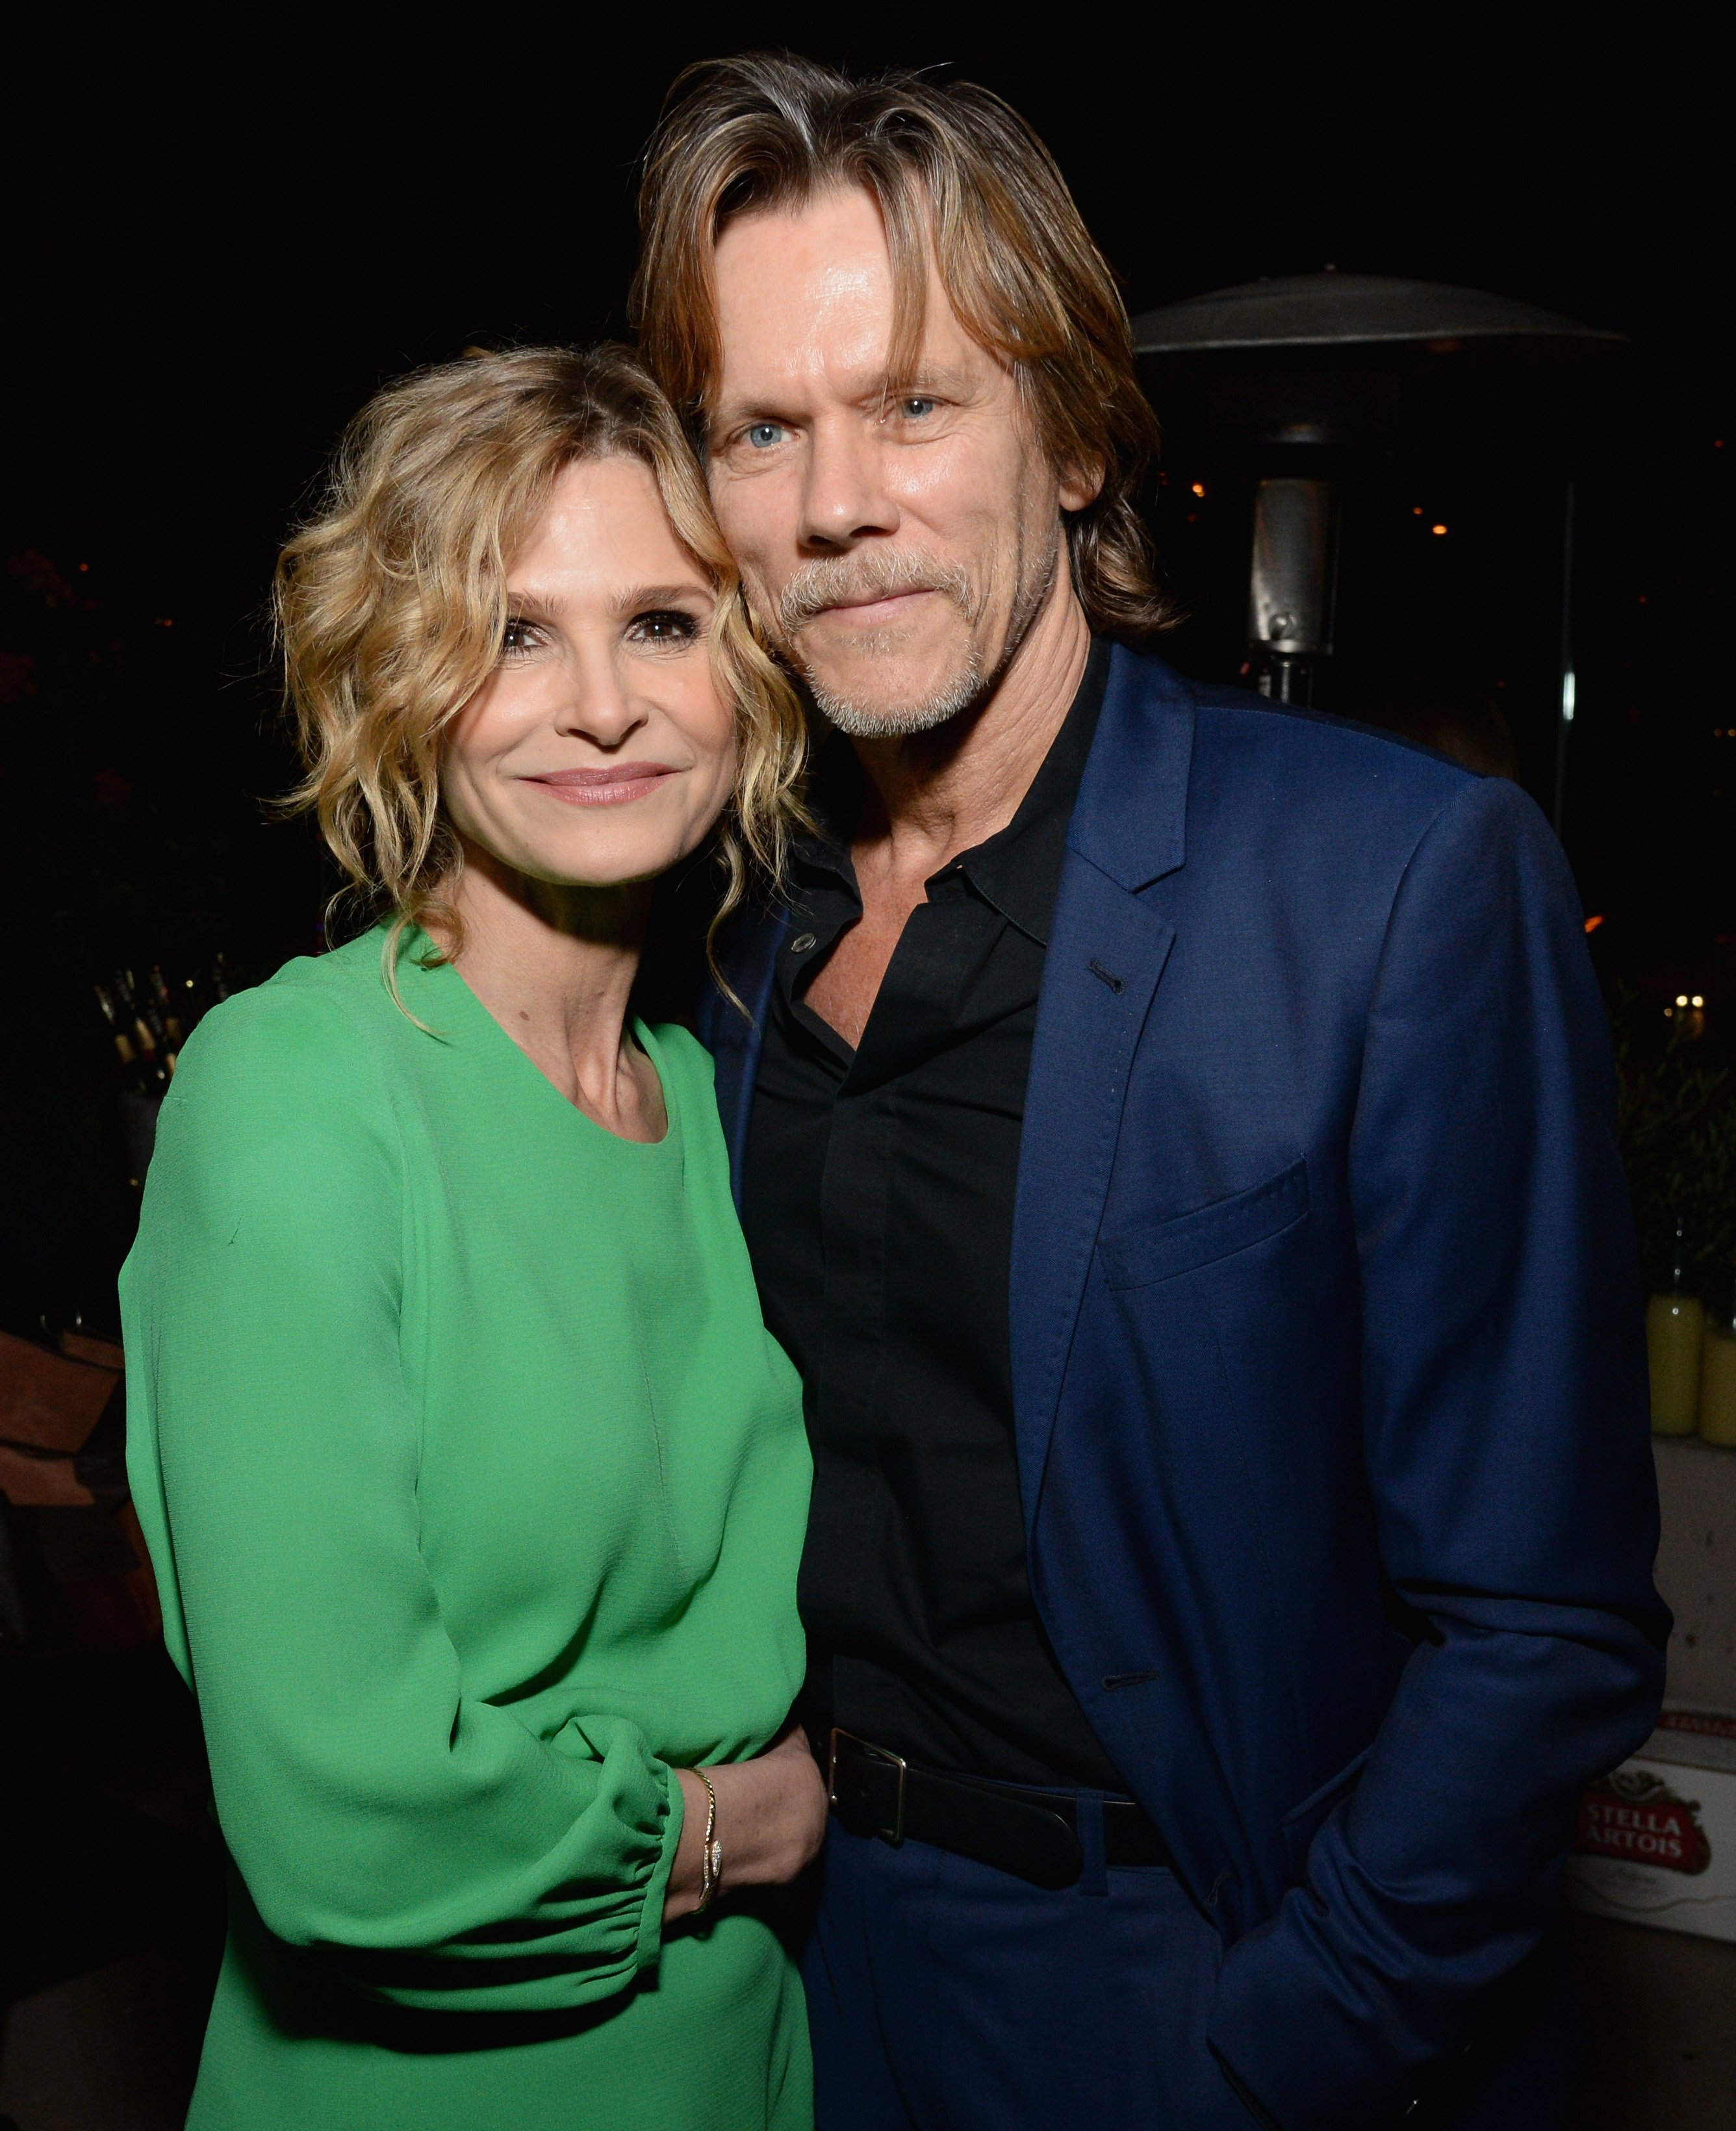 Kyra Sedgwick and Kevin Bacon attends the 75th Anniversary of The Golden Globe Award Season in West Hollywood, California on November 15, 2017 | Photo: Getty Images